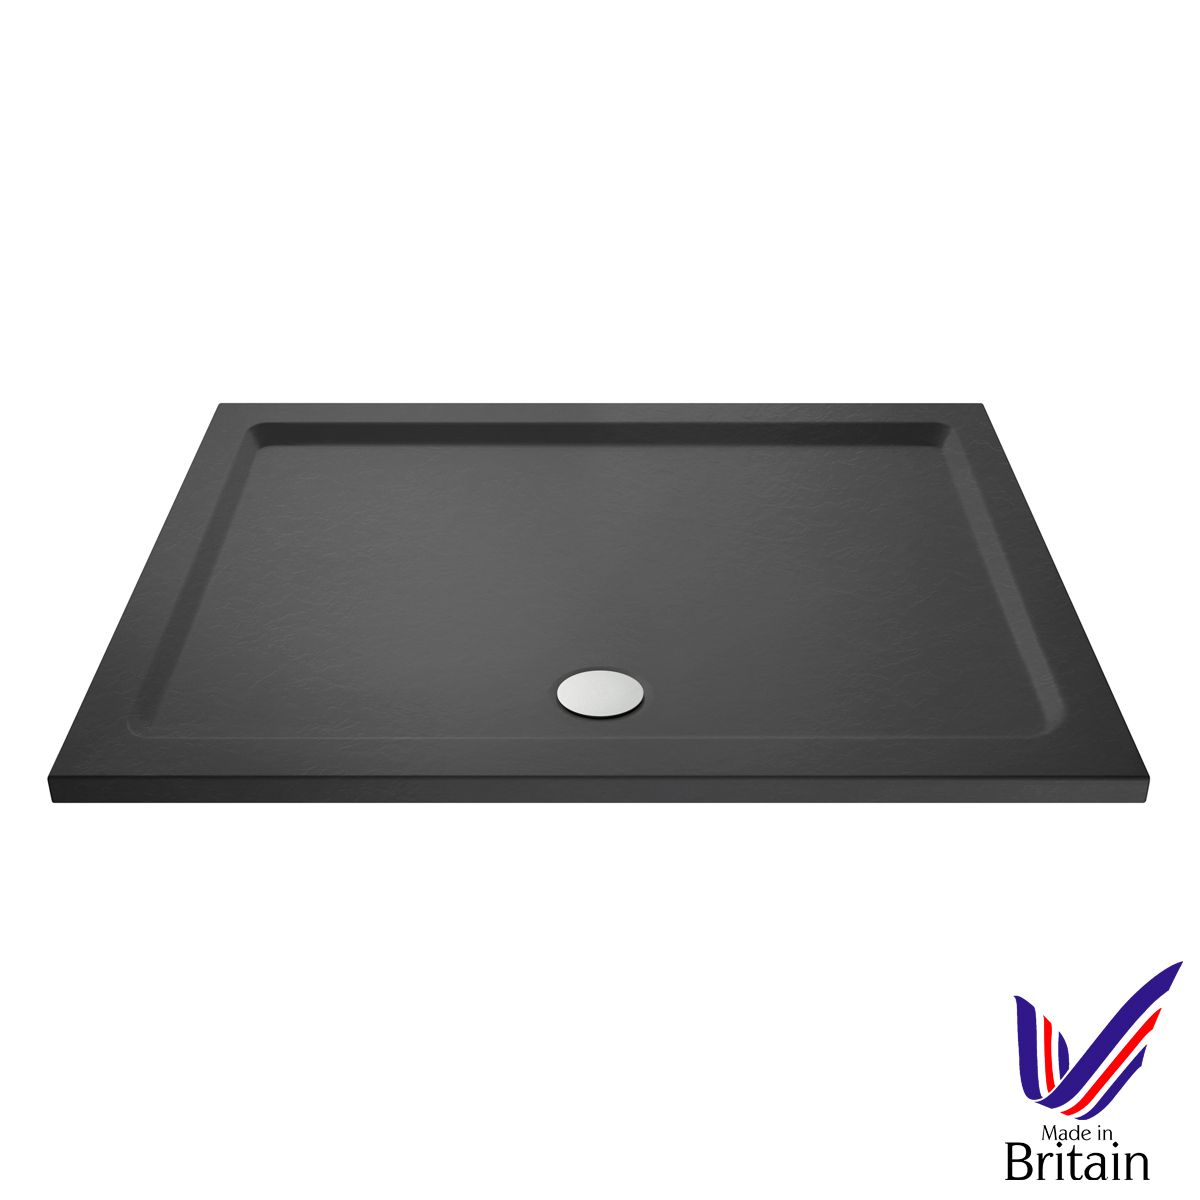 1400 x 700 Shower Tray Slate Grey Rectangular Low Profile by Pearlstone